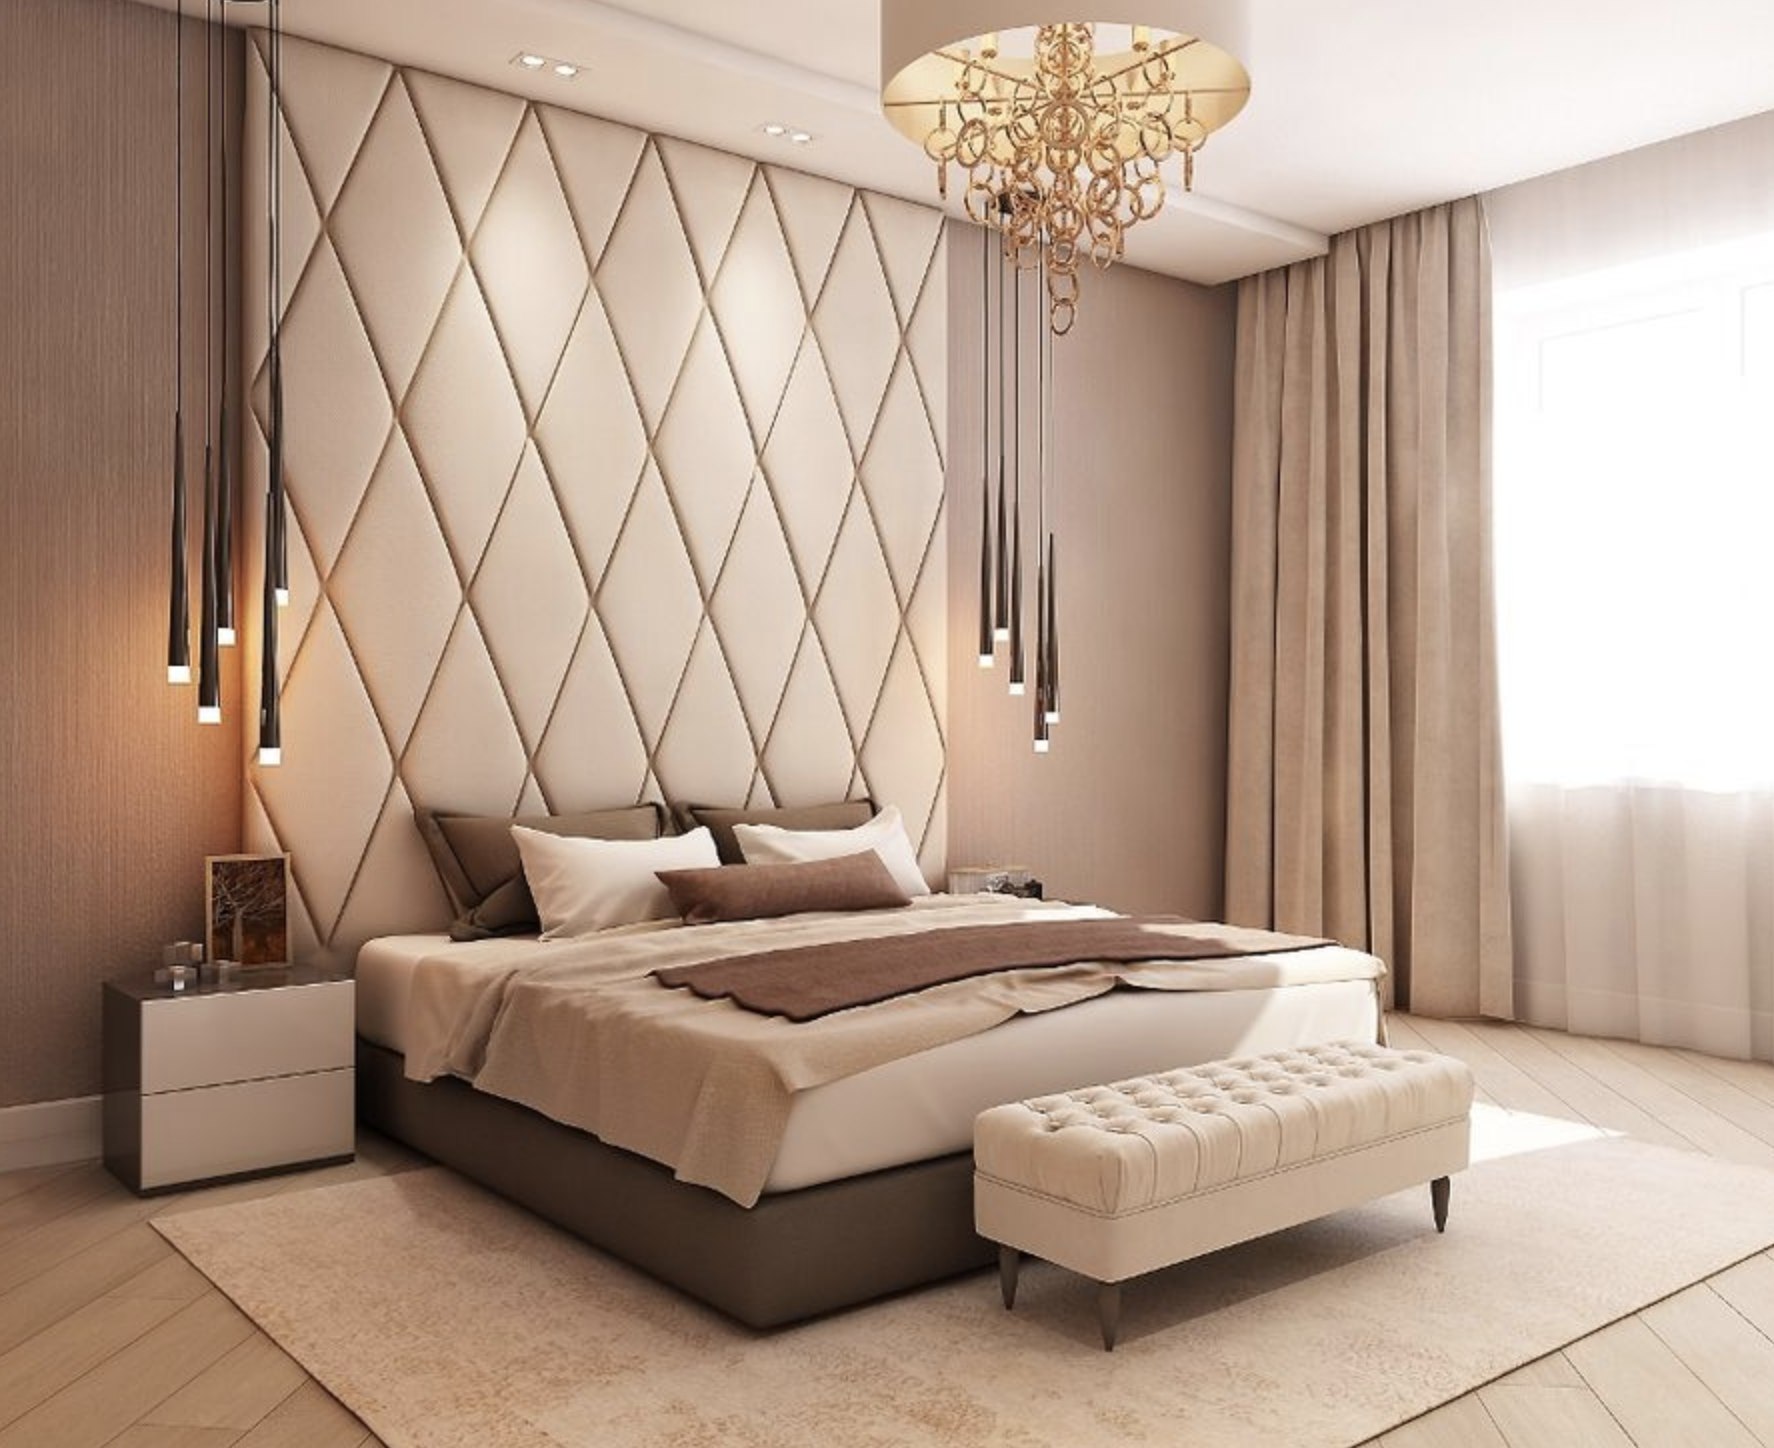 Olga Pustovalova Luxury Timeless And Classic Bedroom Best Top Famous Luxurious Exclusive High End In Luxurious Bedrooms Modern Bedroom Design Classic Bedroom